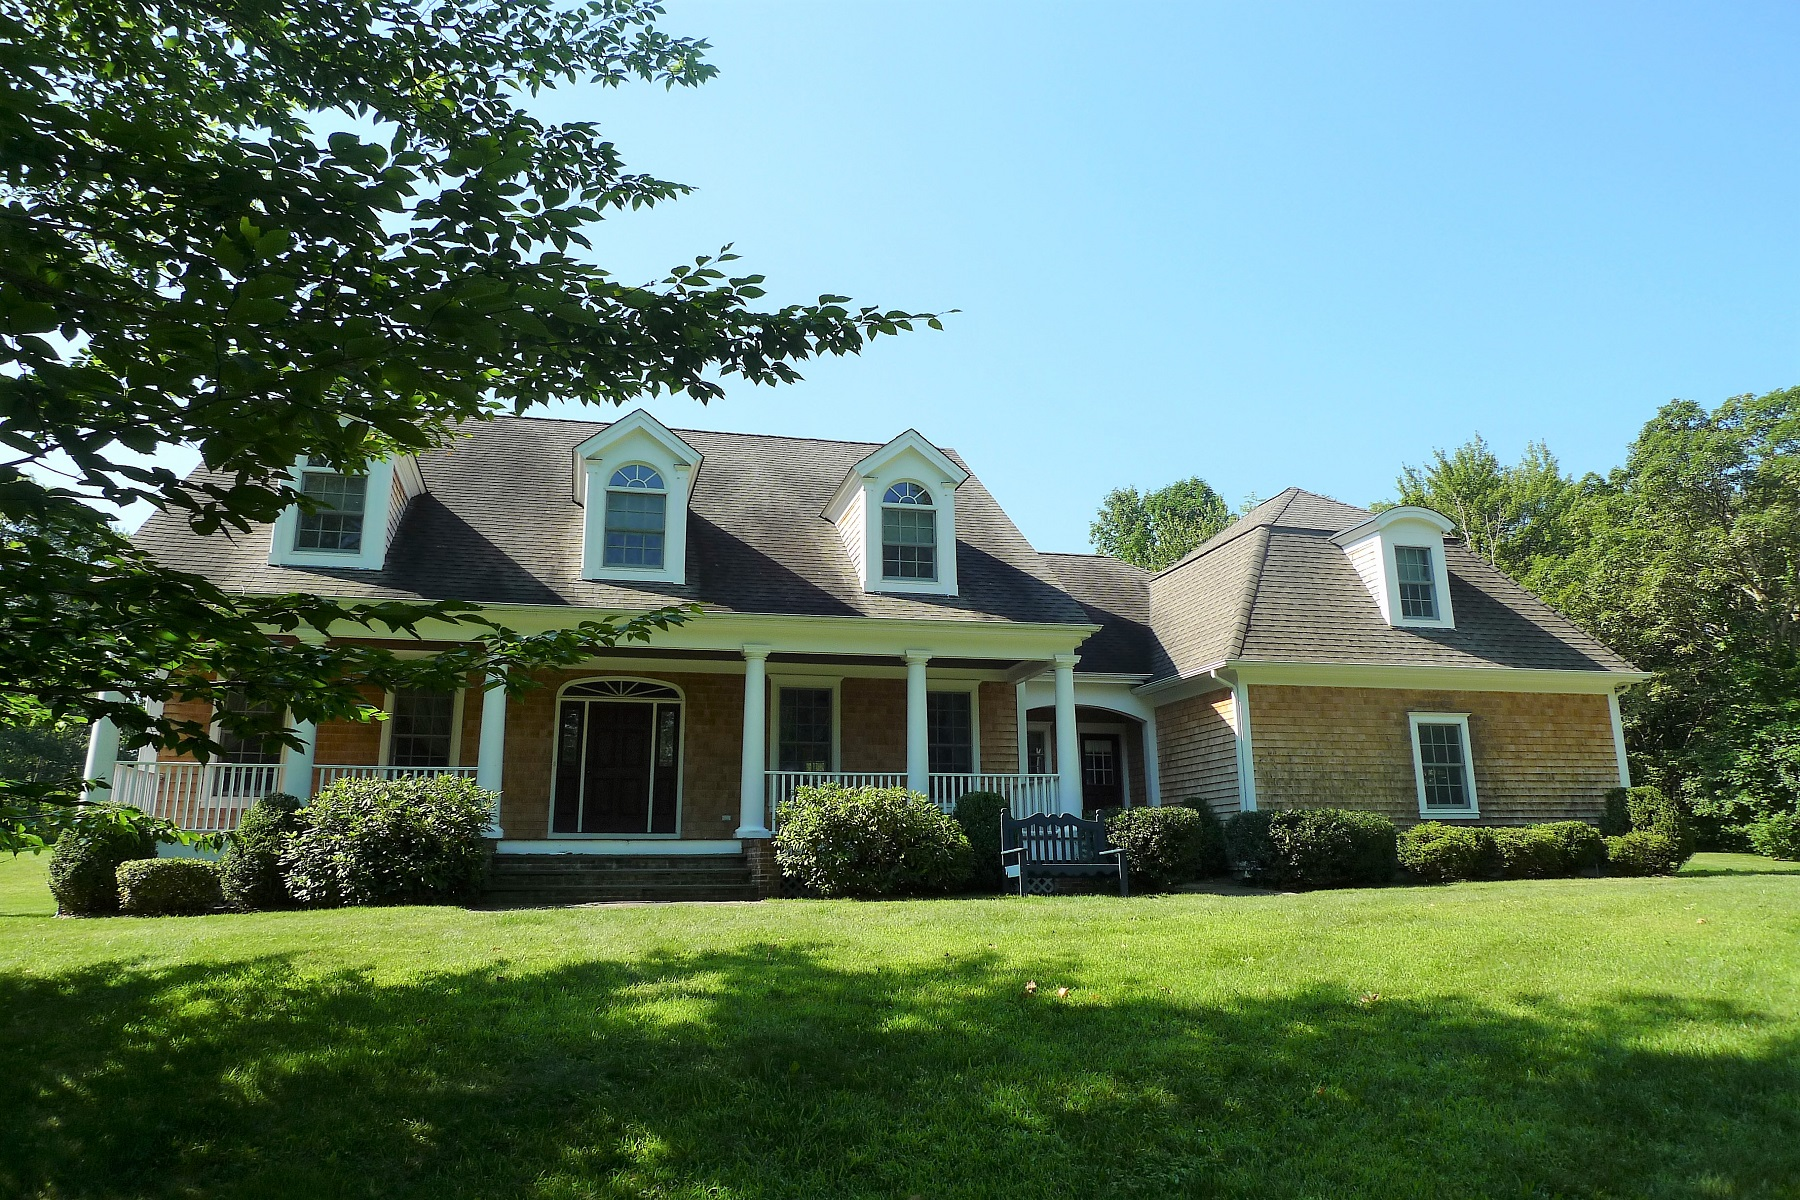 Single Family Home for Rent at Contemporary Cape in the Country 458 Route 343 Millbrook, New York 12545 United States